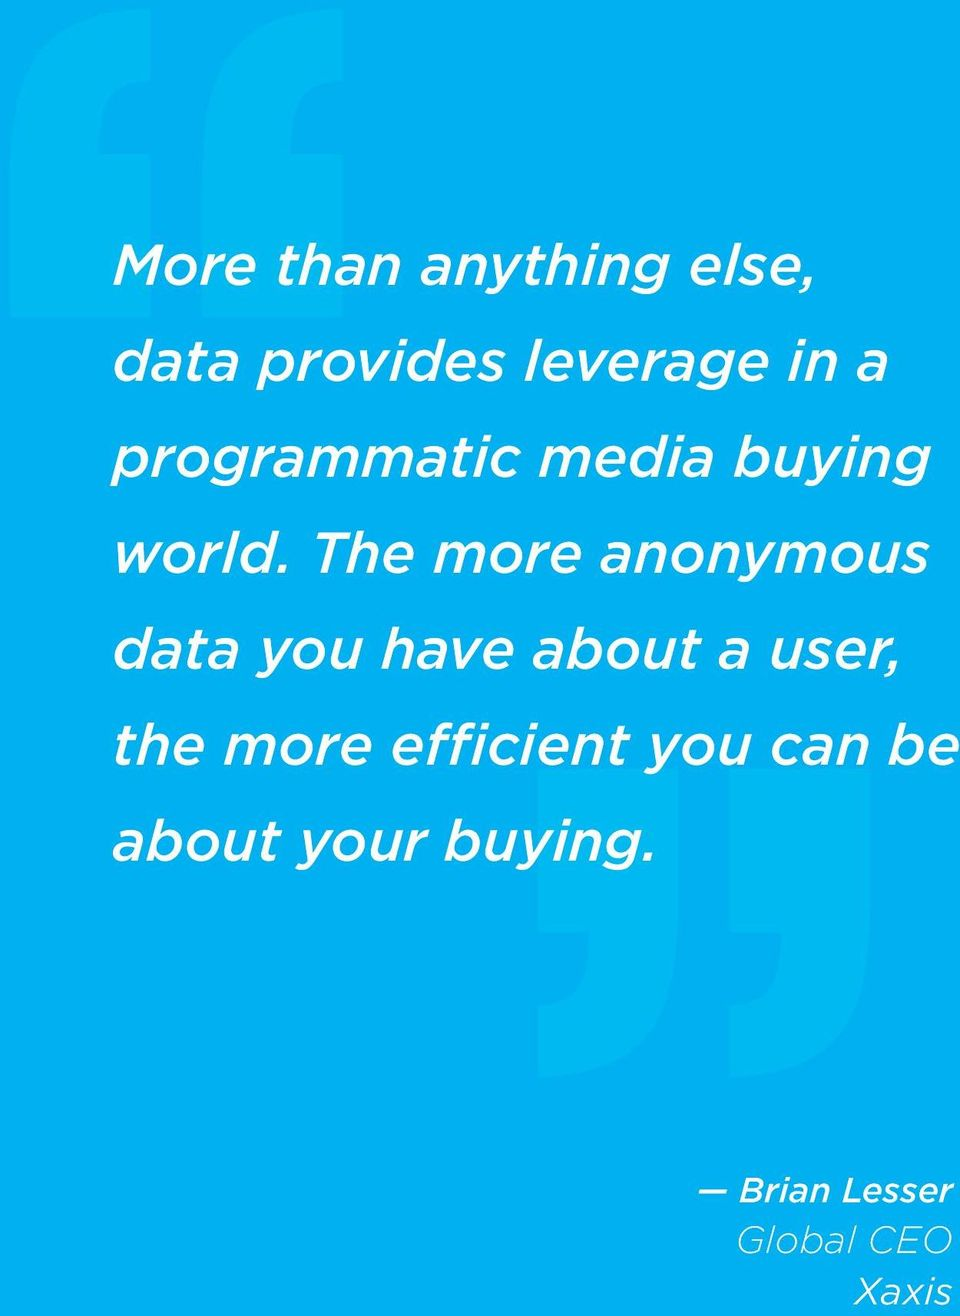 The more anonymous data you have about a user, the